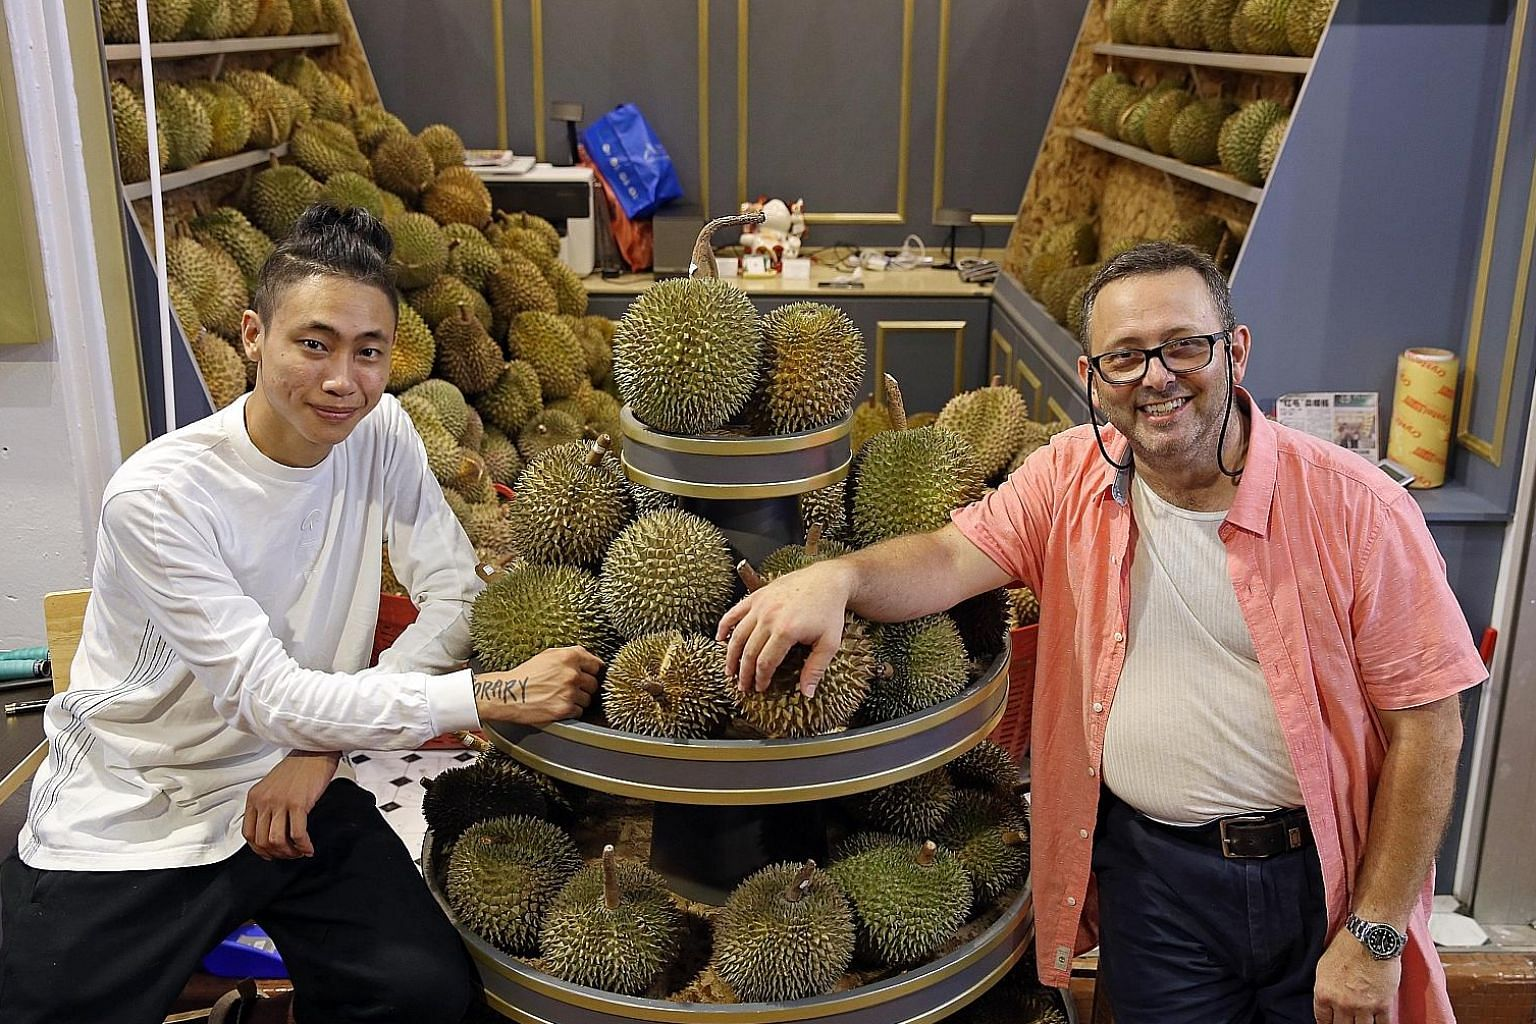 Mr Phillip George Laskaris (right) teamed up with Mr Marc Ashley to open Yu Lian, which specialises in Thai durian.